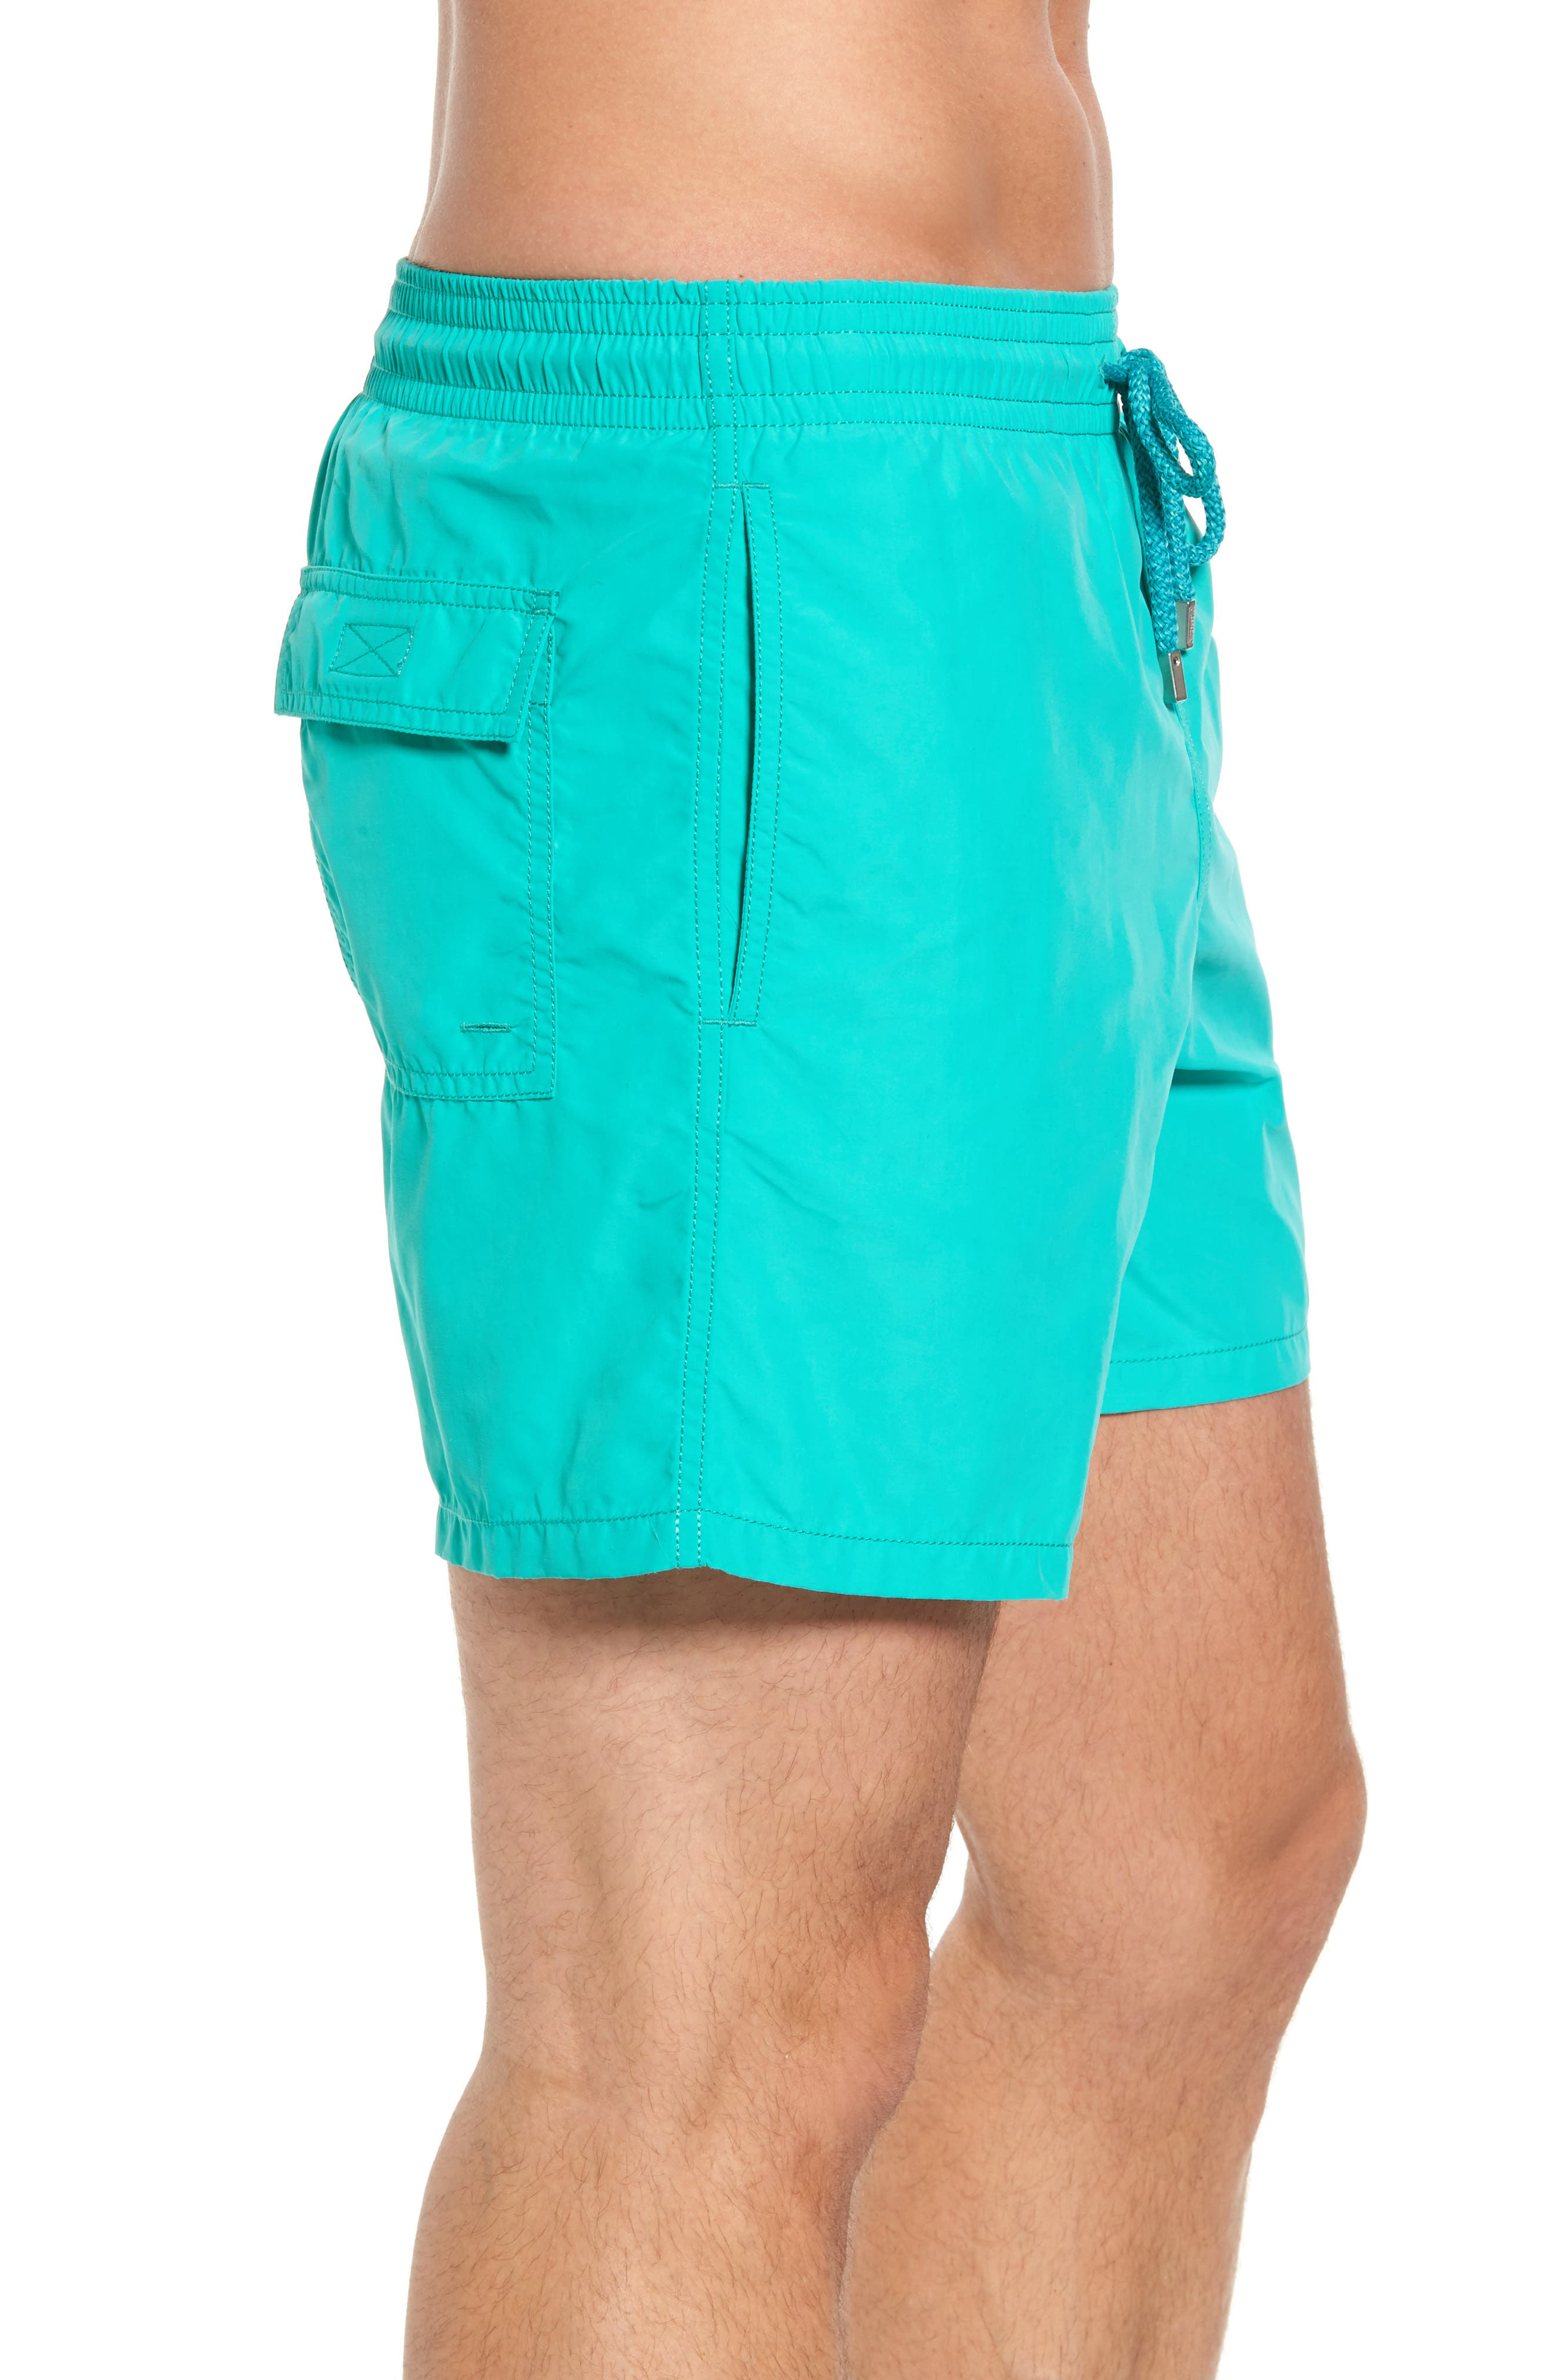 Sardine Water Reactive Swim Trunks,                             Alternate thumbnail 3, color,                             Veronese Green